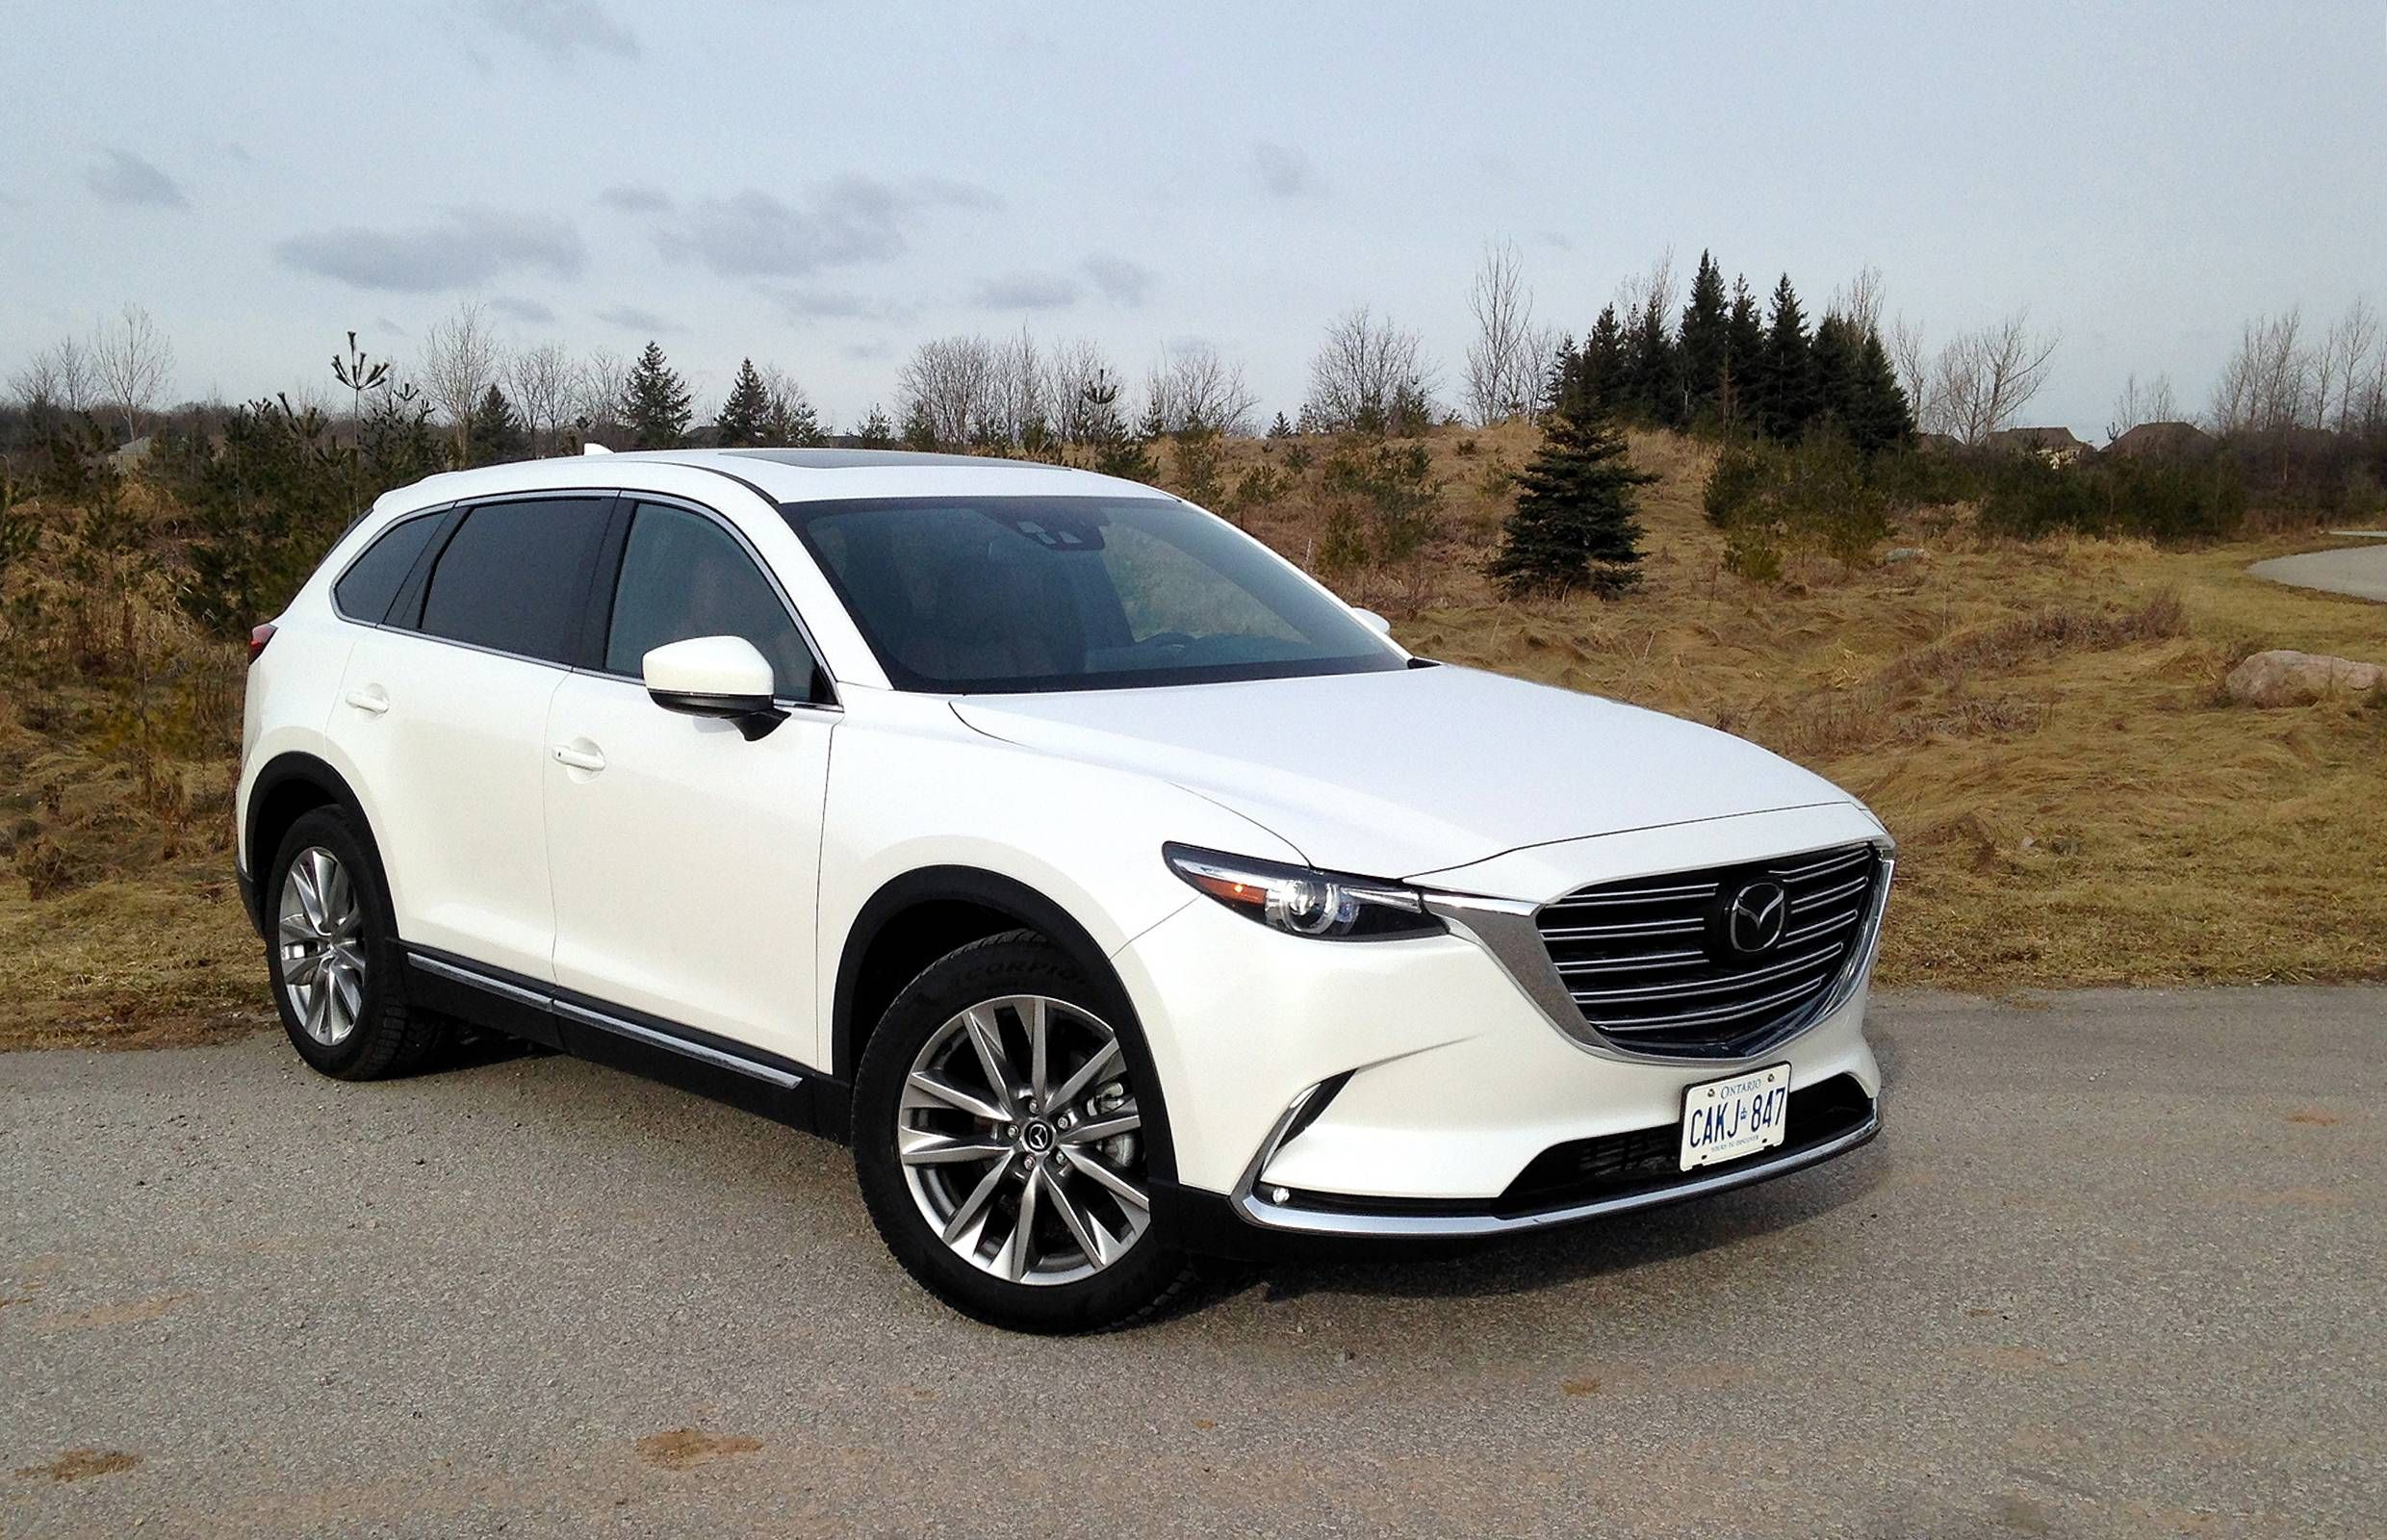 Suv Review 2017 Mazda Cx 9 Credit Peter Bleakney